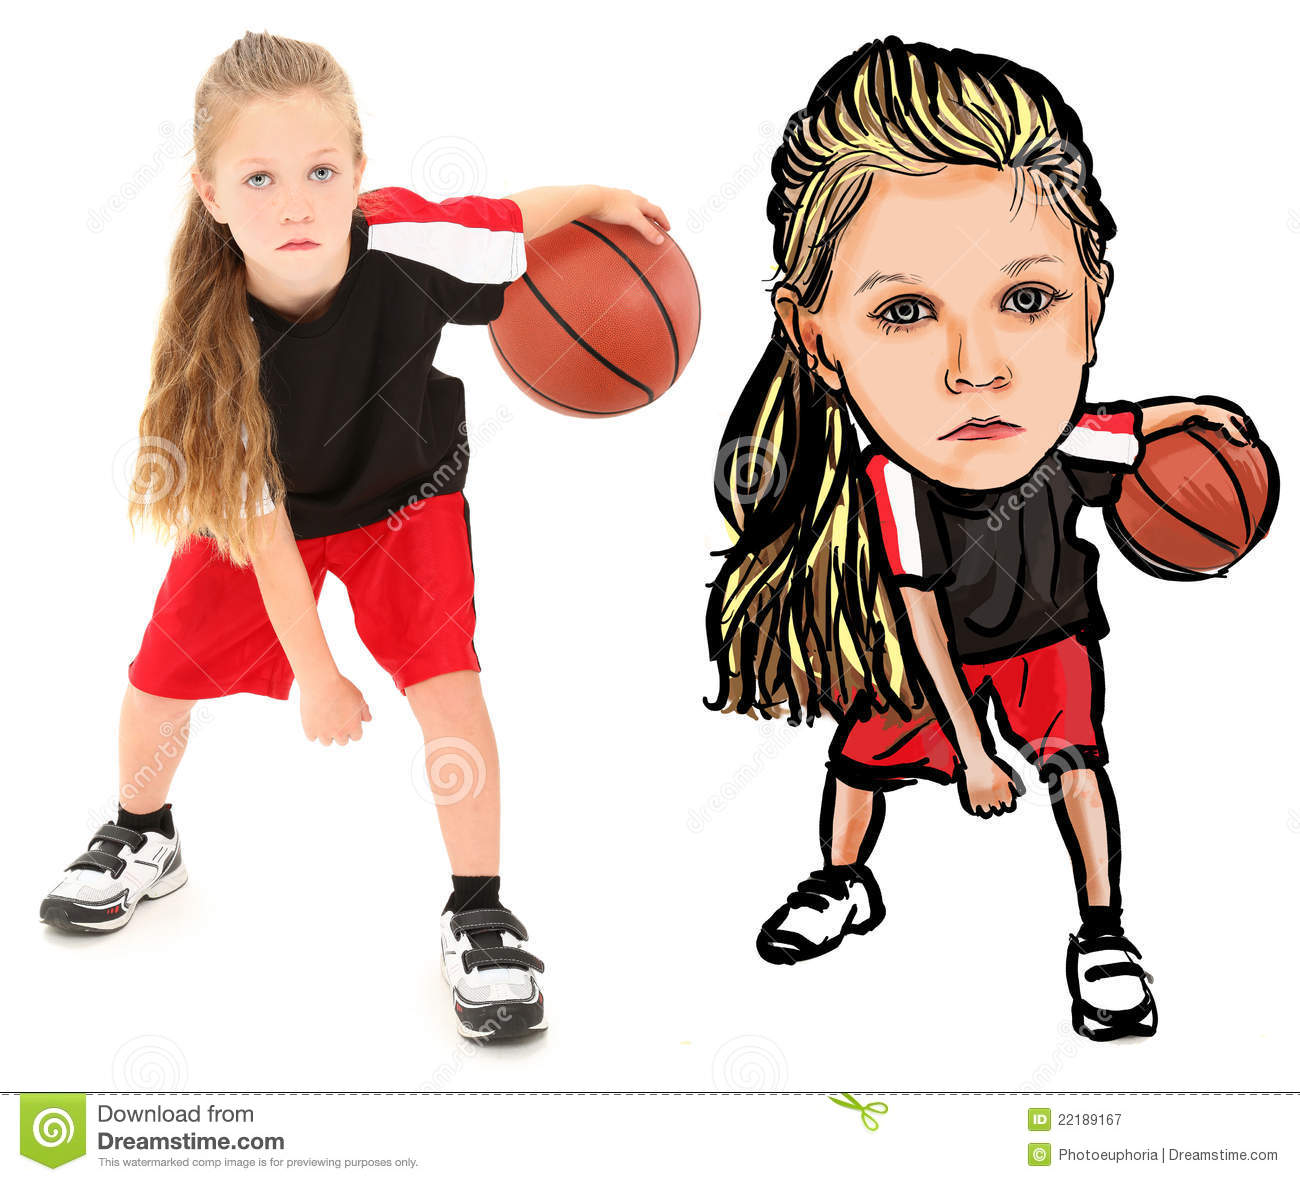 Photograph Illustration of Child with Basketball